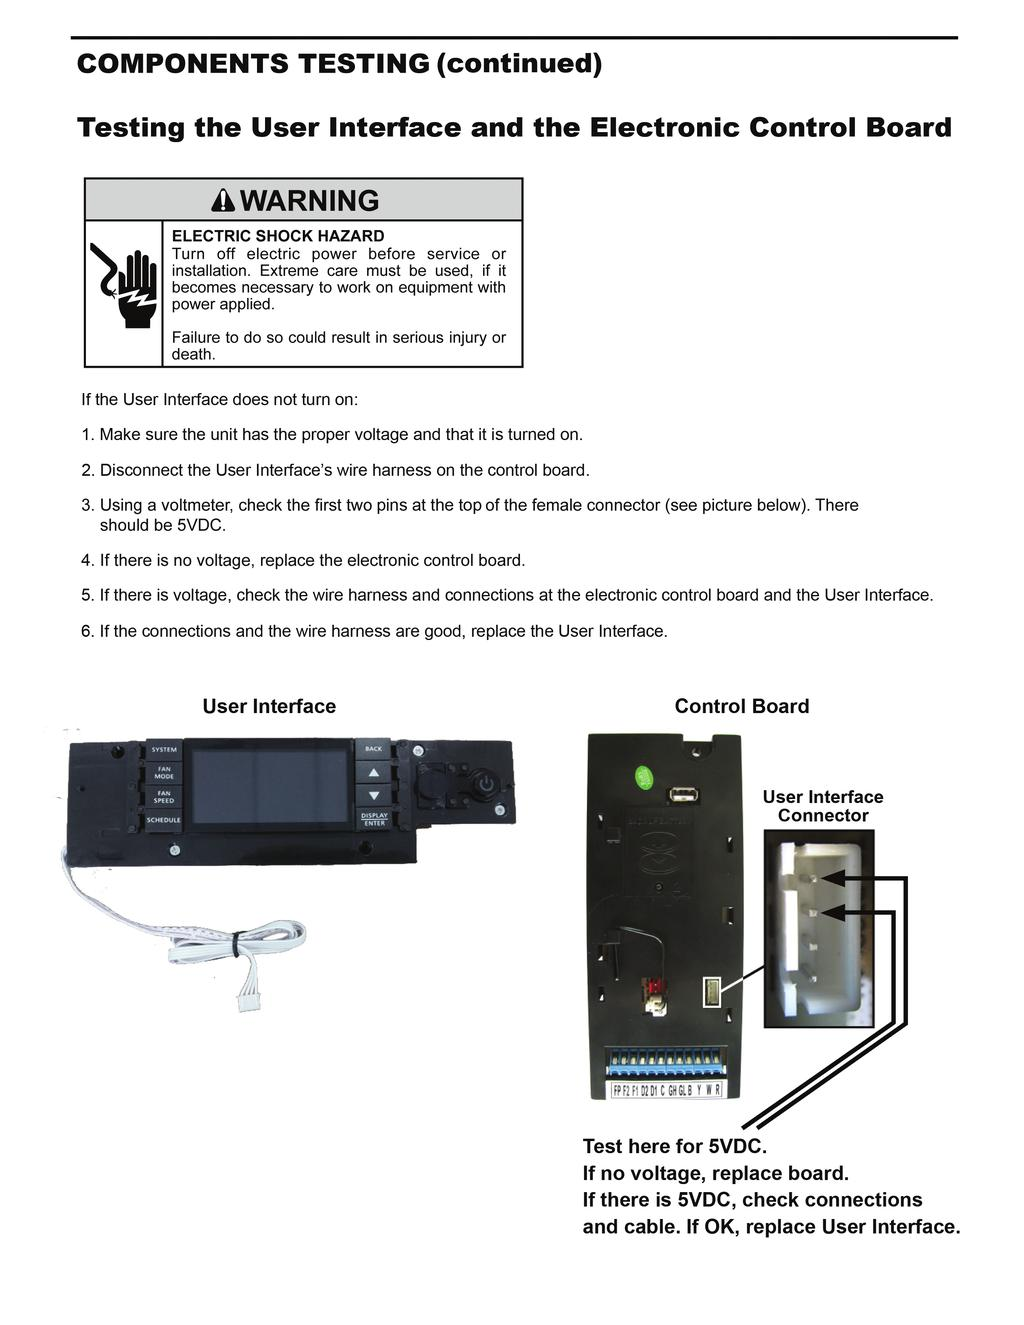 Room Air Conditioners Pdf Cool Cold Ice2 Cooling Pad 156 Inch If The User Interface Does Not Turn On 1